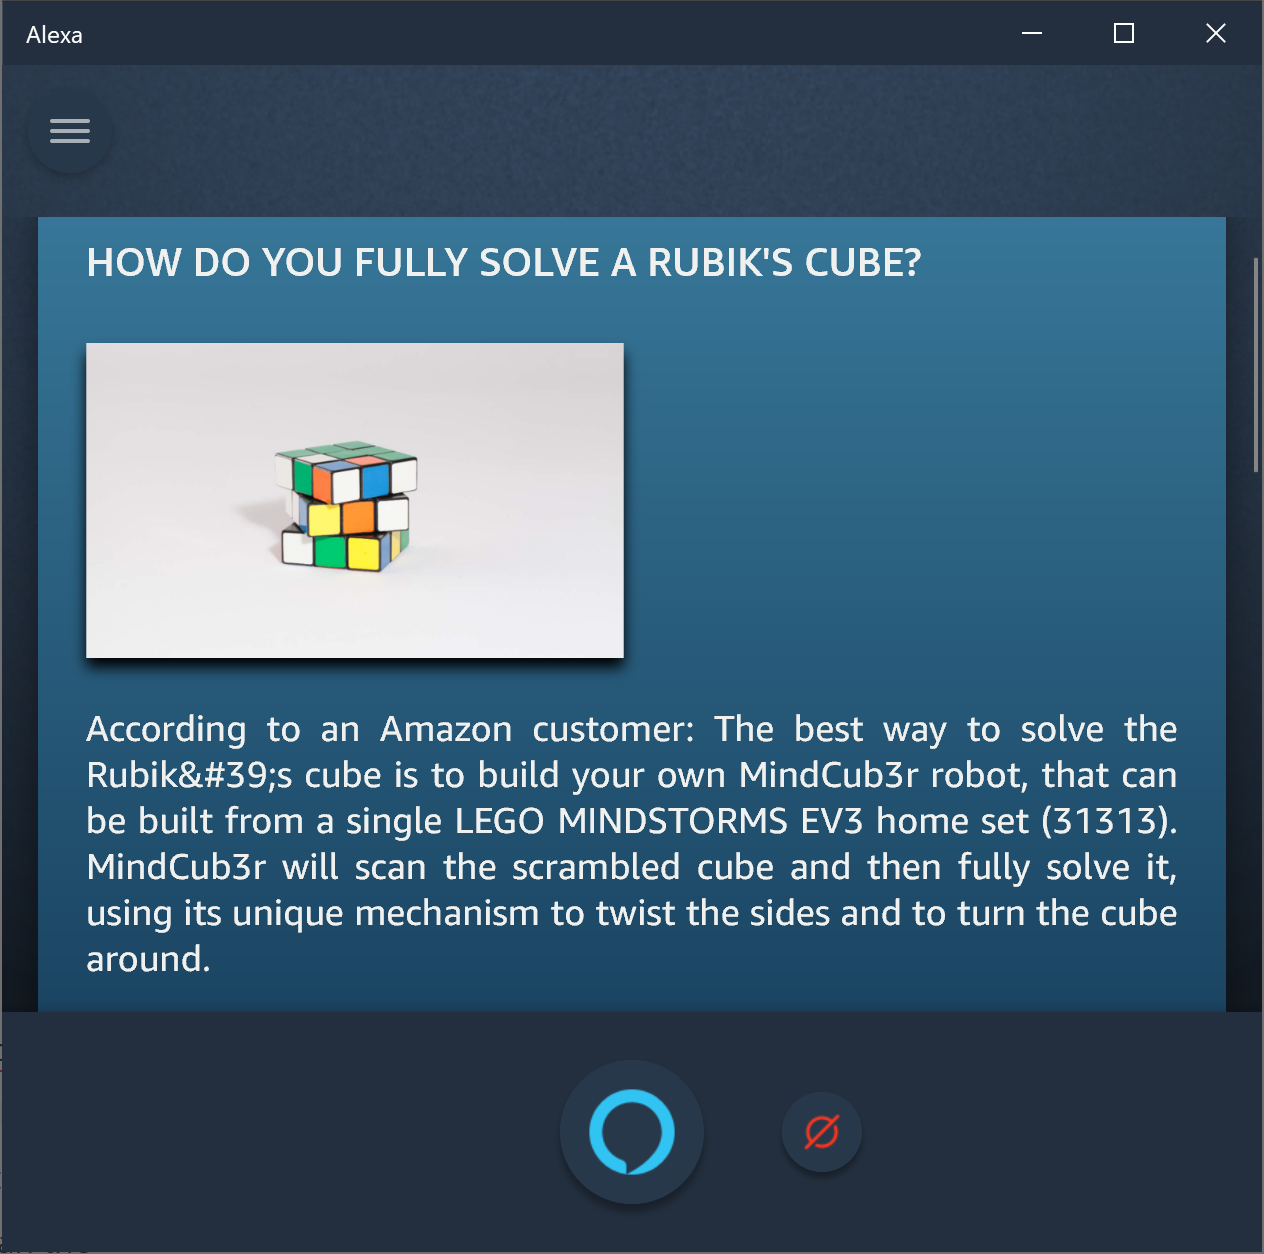 Amazon Alexa on how to fully solve a Rubik's cube